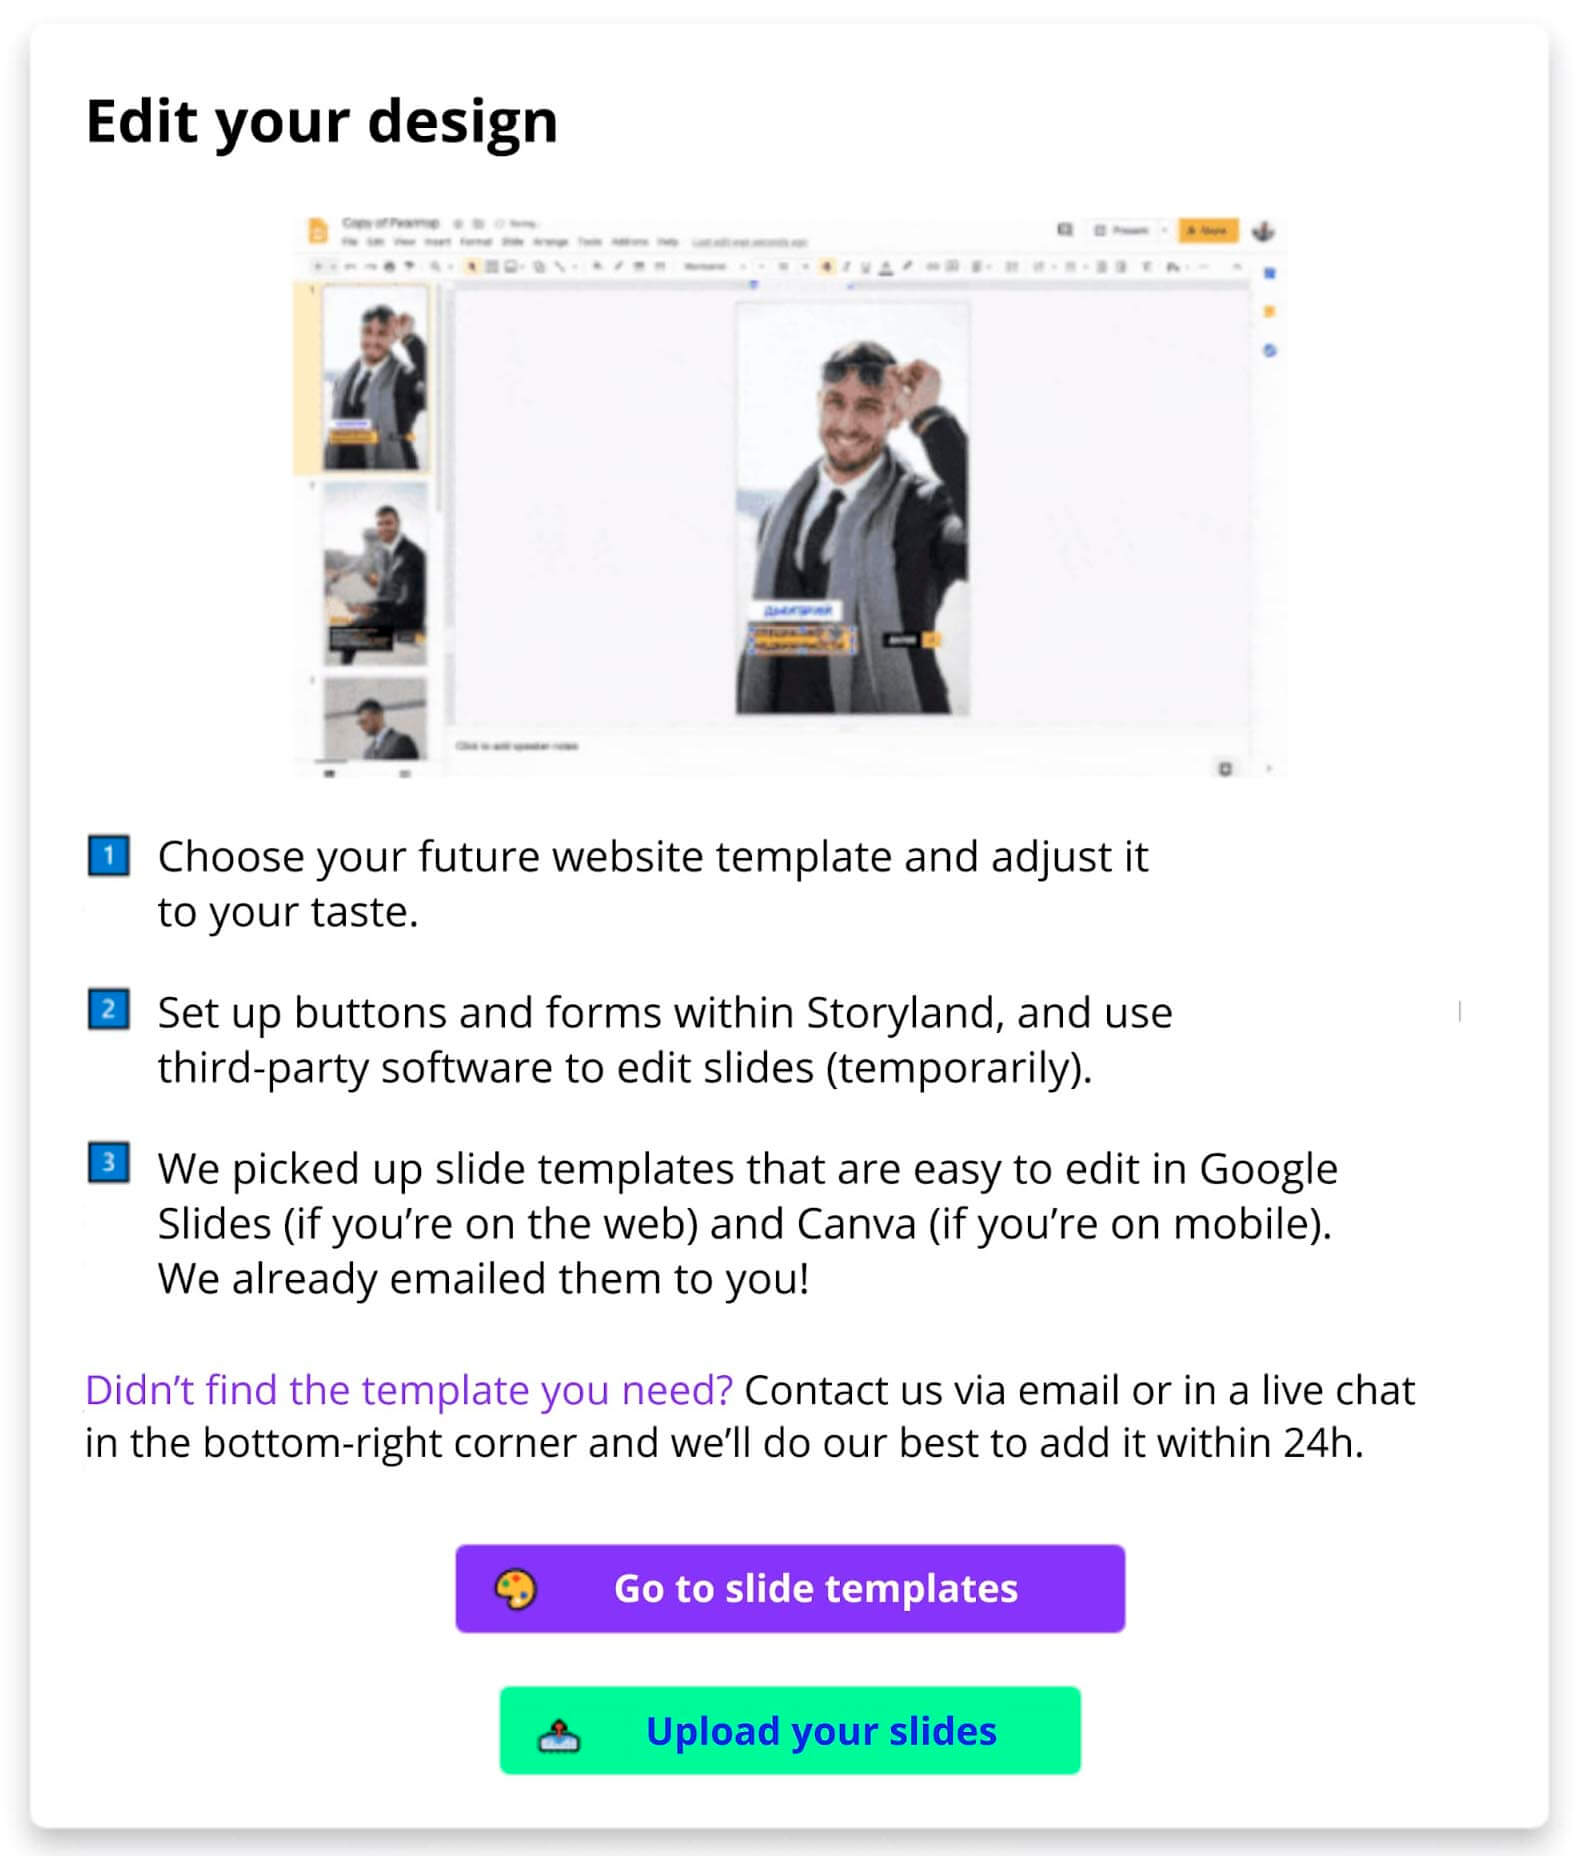 Pop-up leading to the slide templates